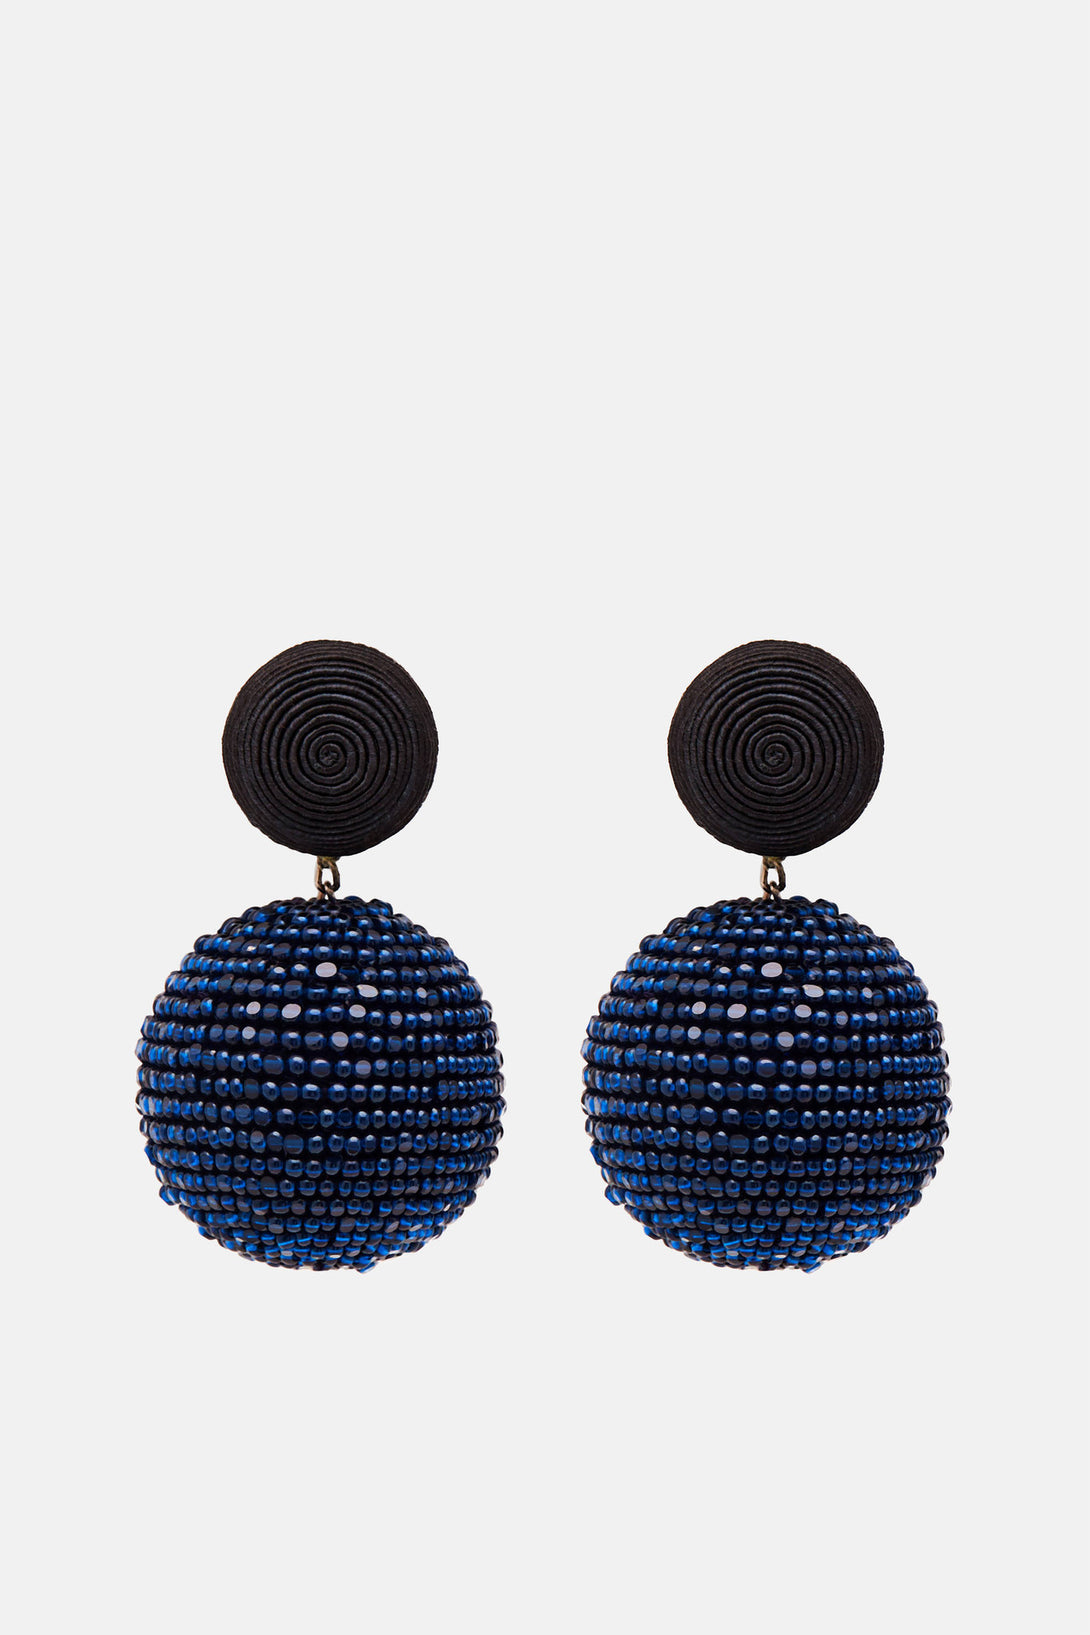 Two-Ball Earrings - Black/Navy